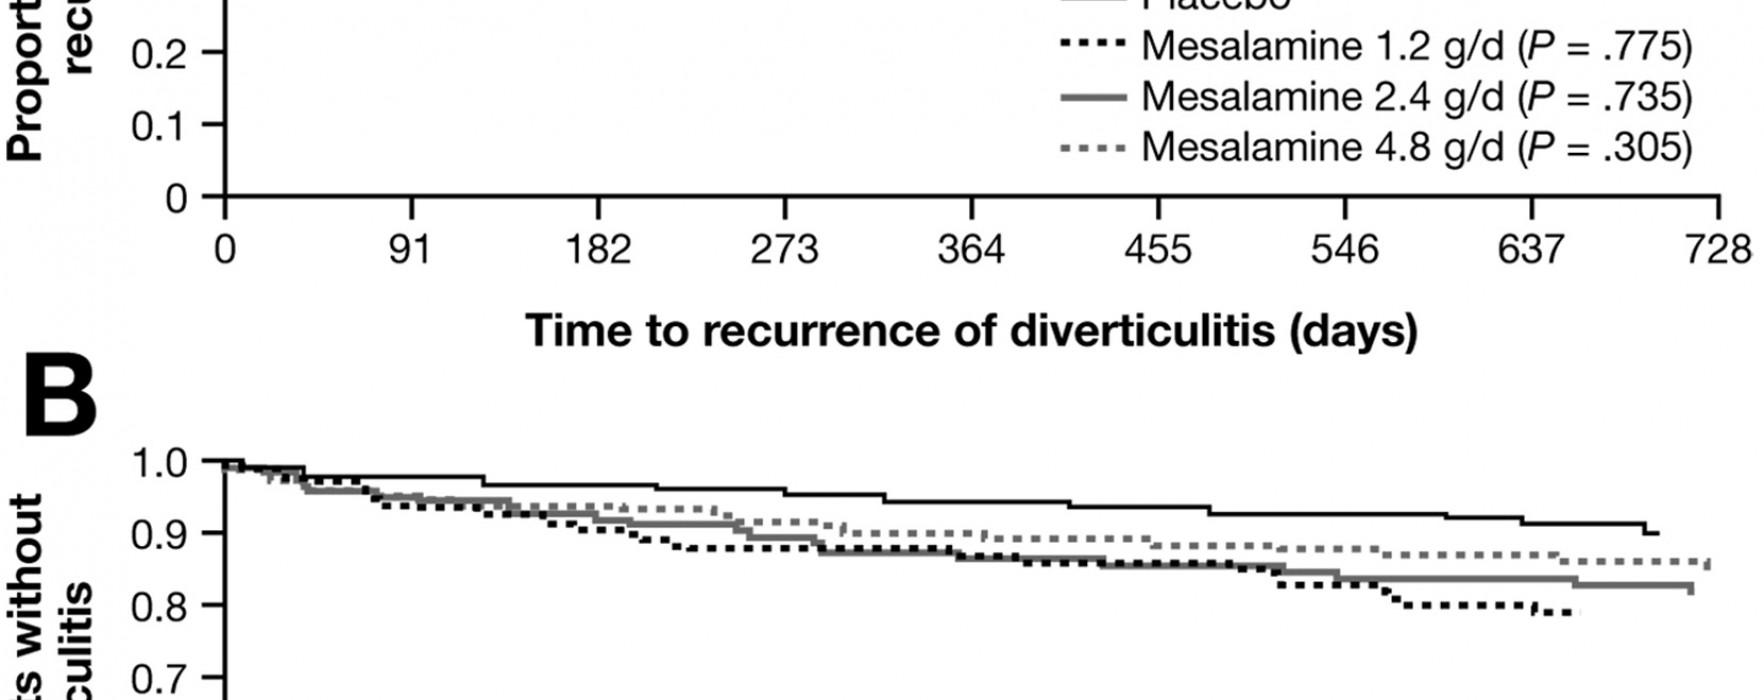 Can Mesalamine Prevent Diverticulitis Recurrence?